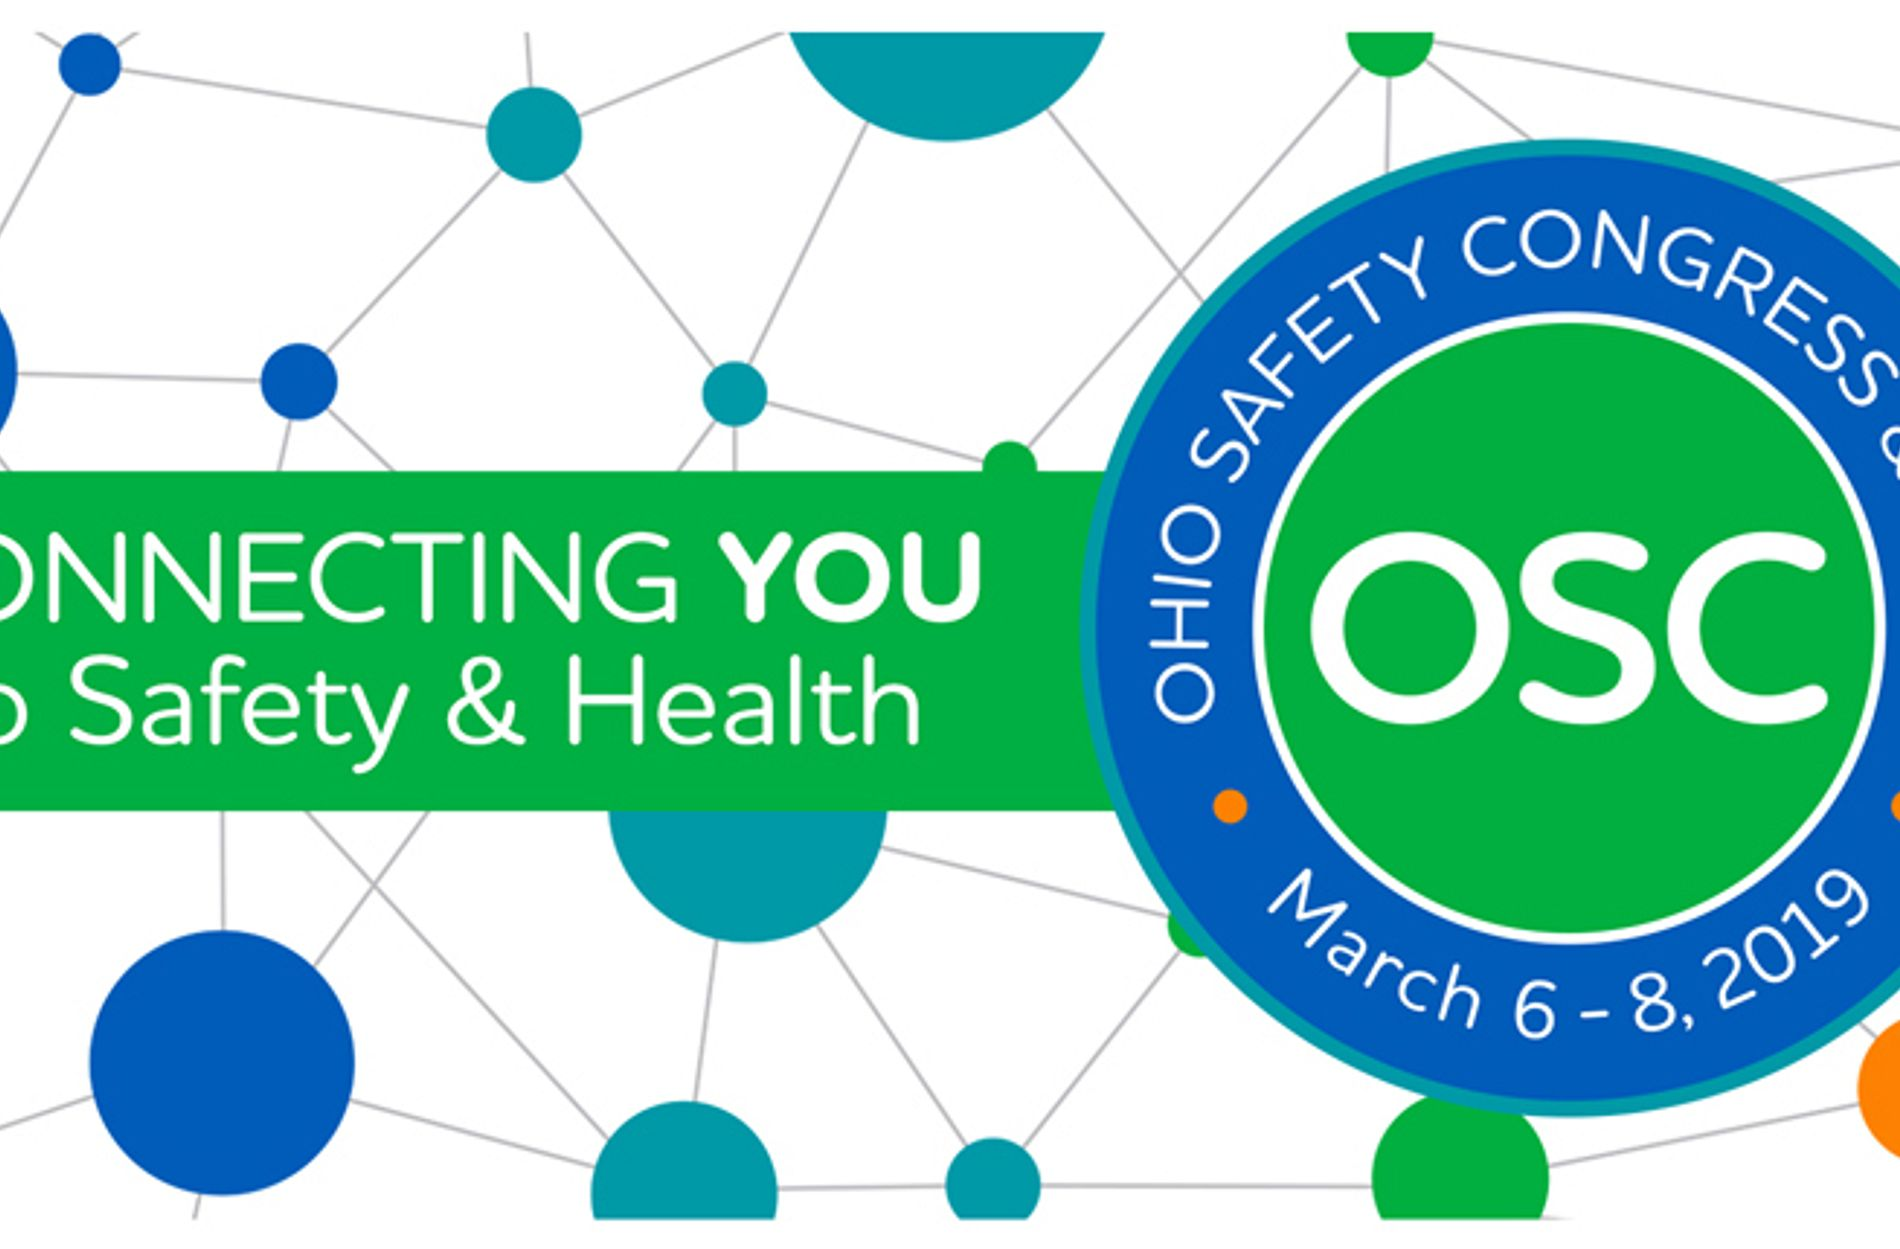 Oswald to Attend the Ohio Safety Congress & Expo March 6-8 in Columbus